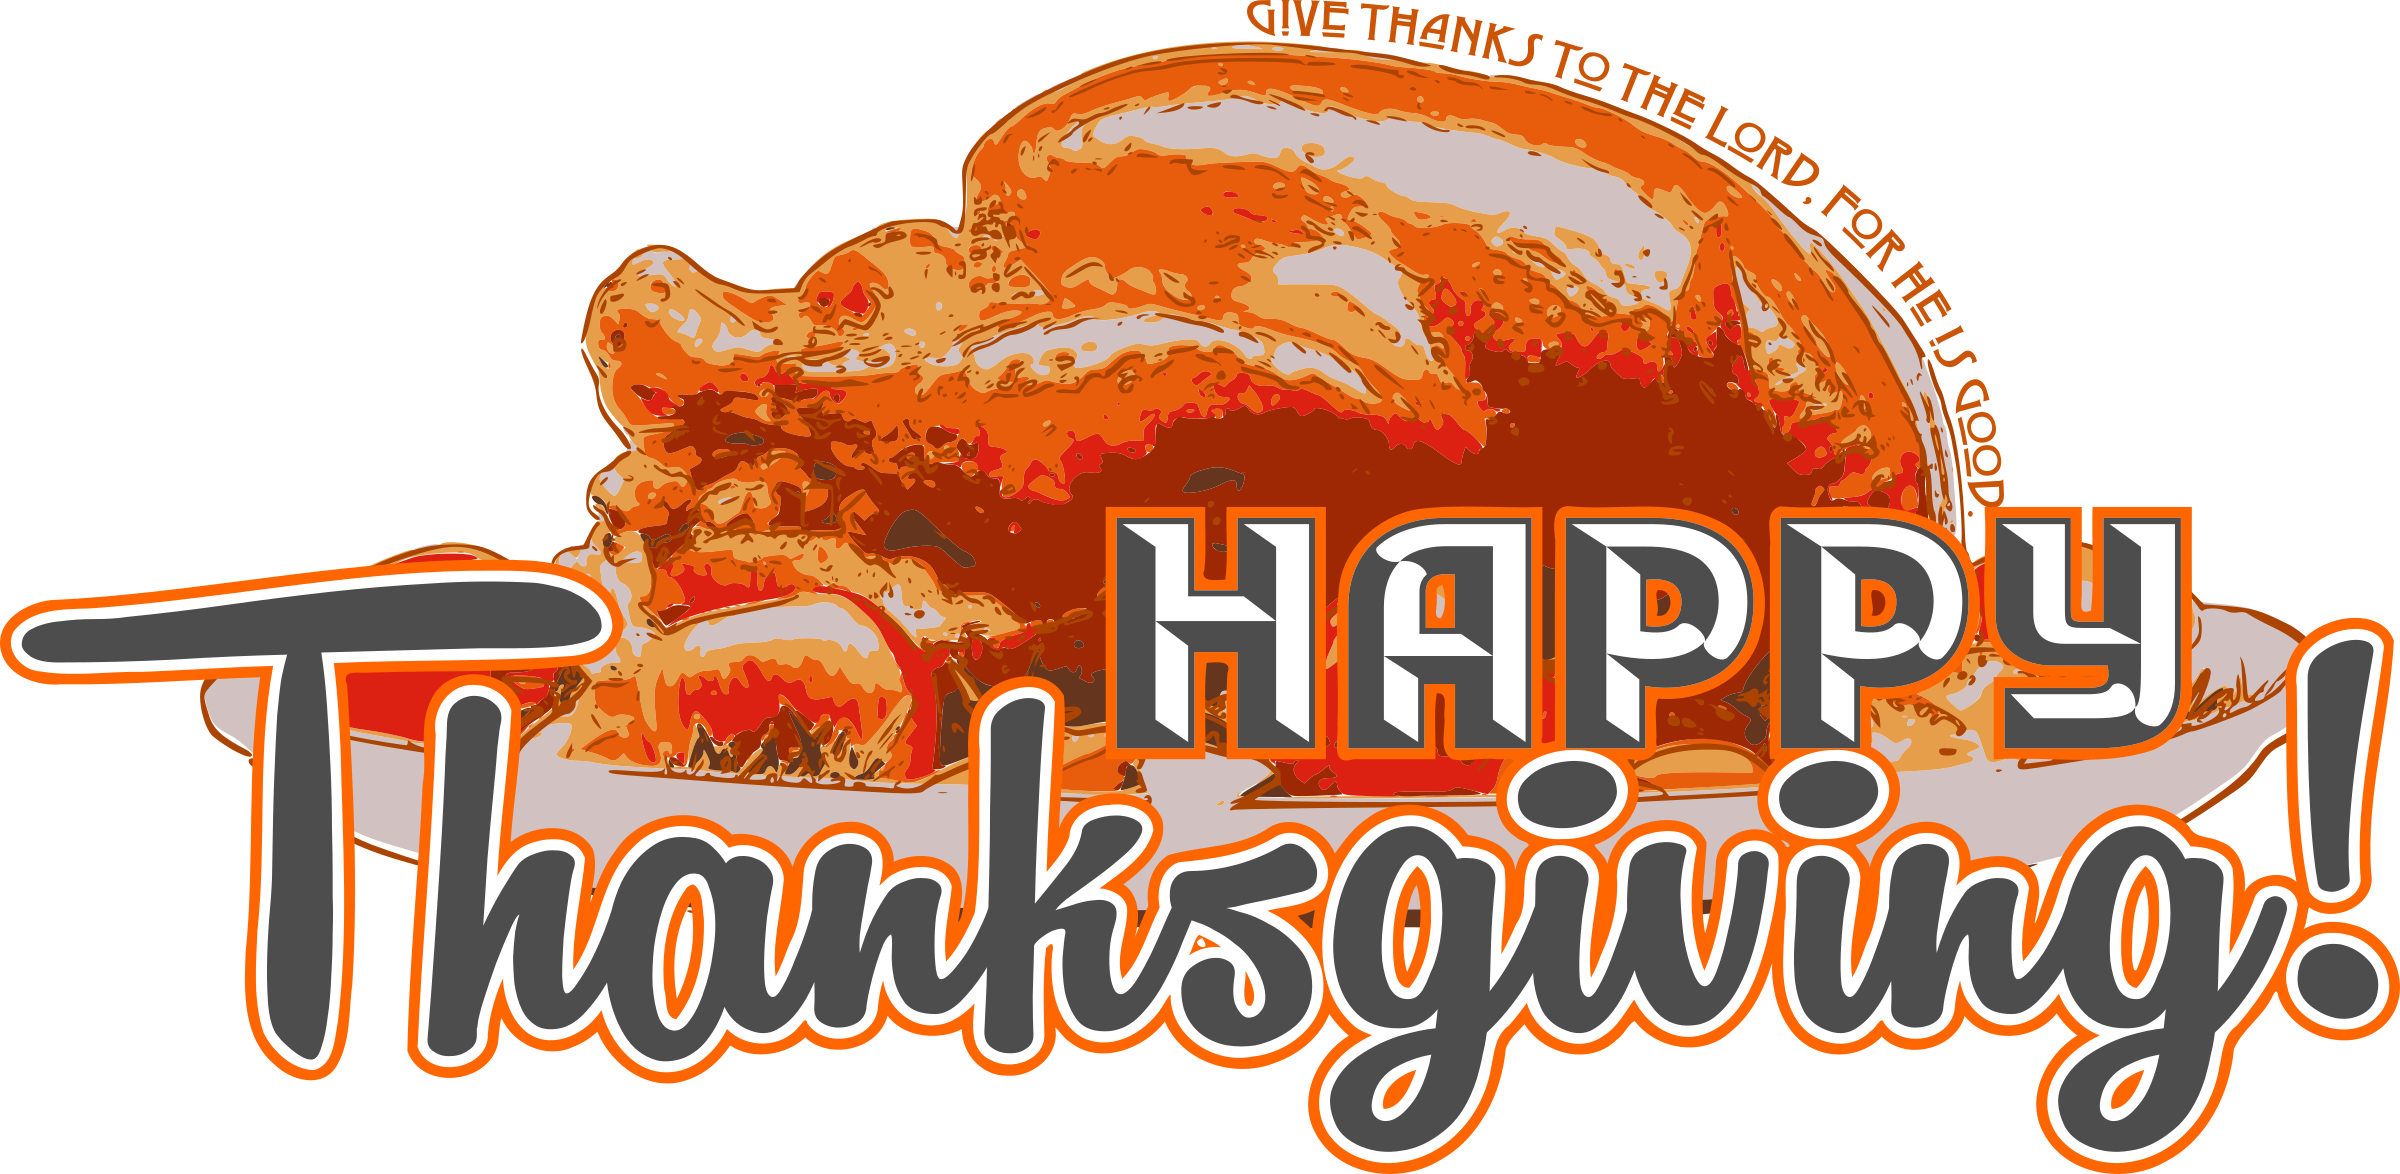 Thanksgiving 2015 clipart png freeuse download Clipart - Happy Thanksgiving png freeuse download